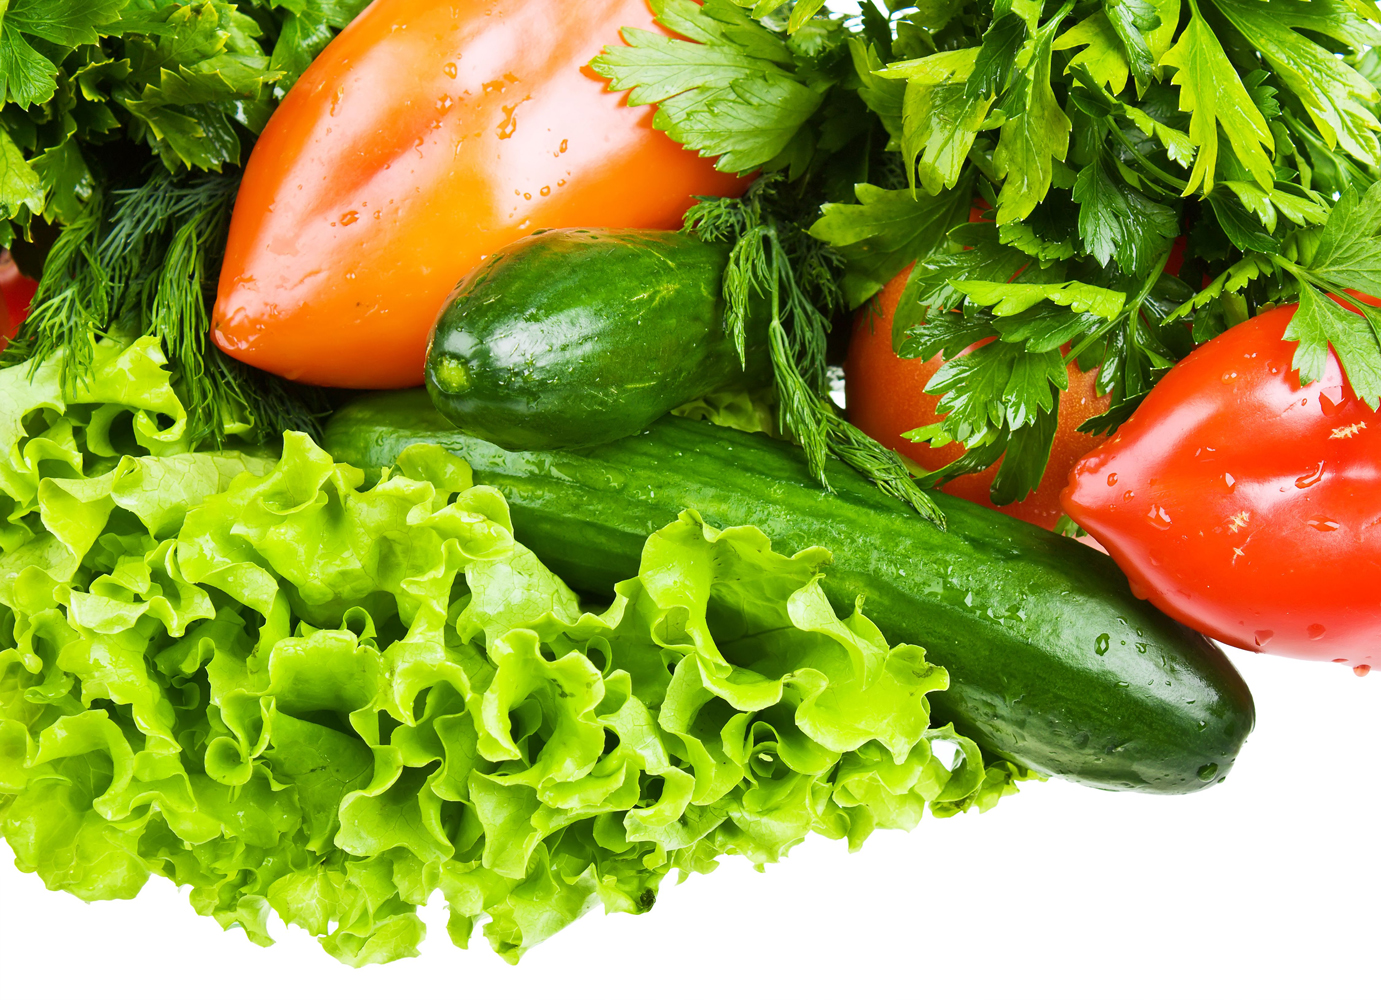 Area commercial vegetable production clinic set for March 6 in ...